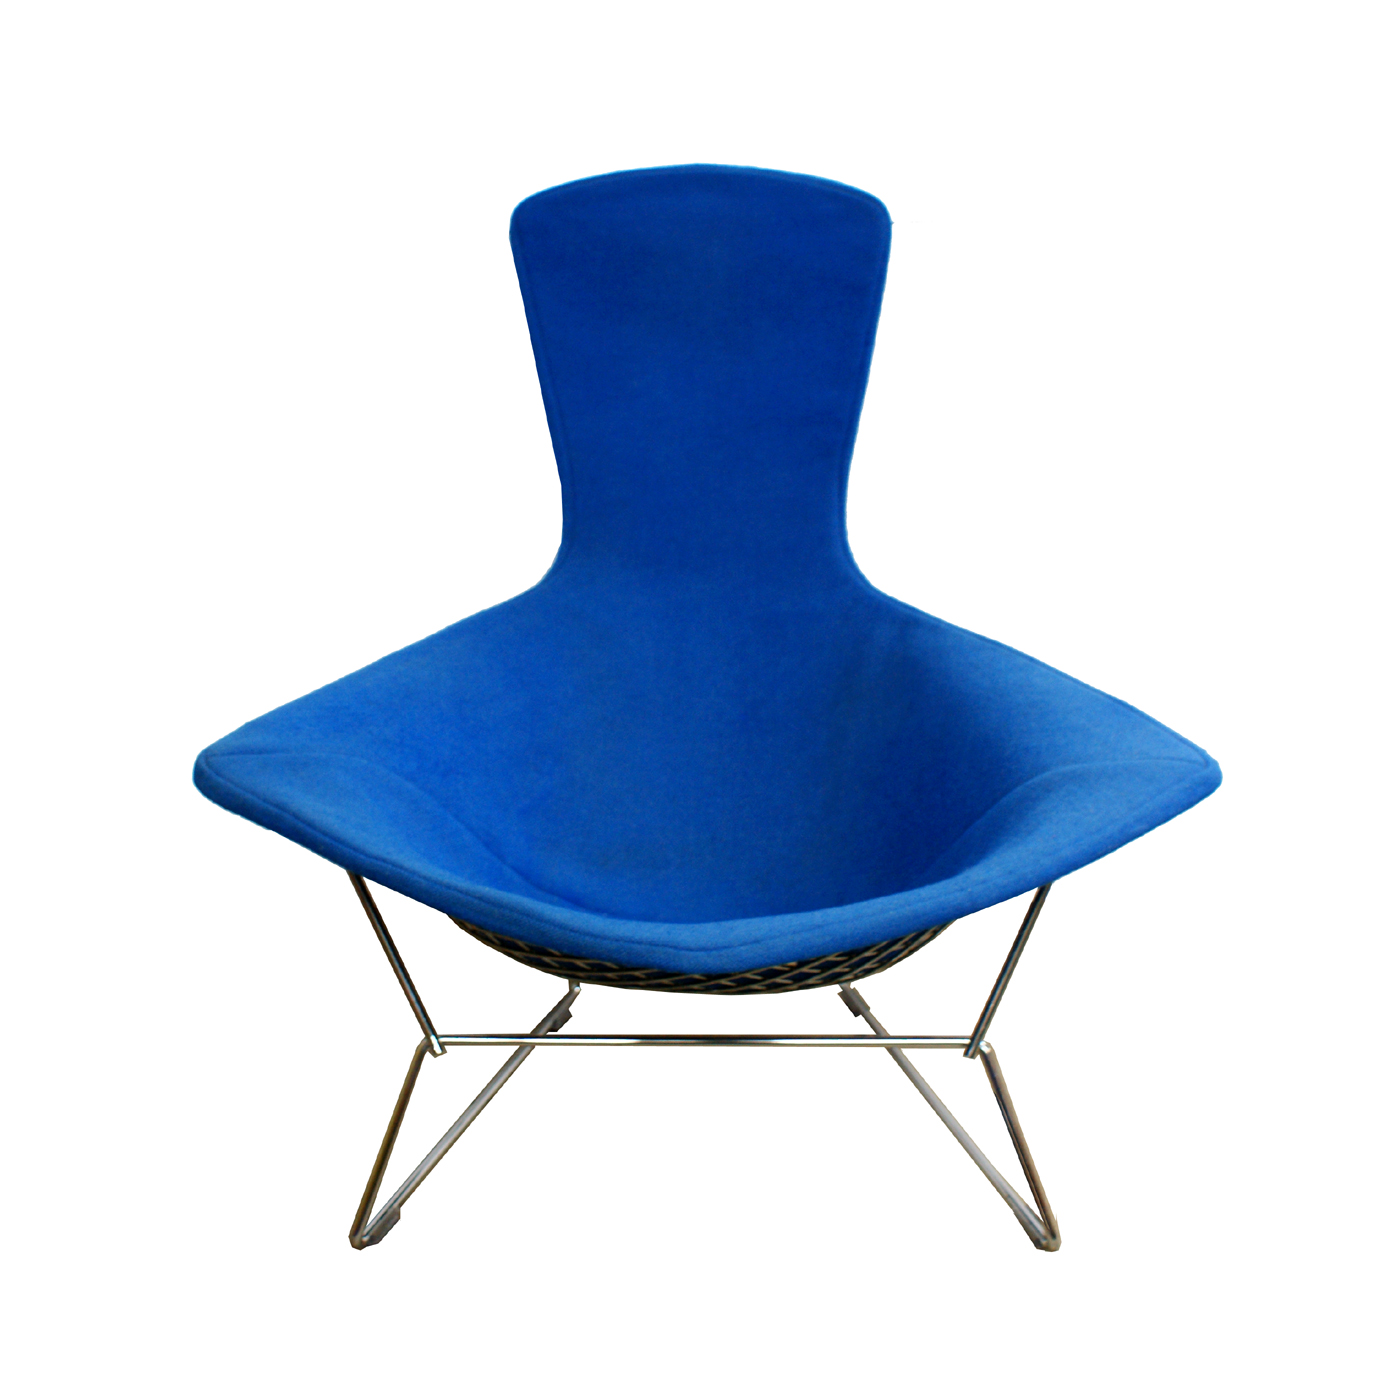 Harry Bertoia Chair Original Bird Chair By Harry Bertoia For Knoll Mid Century